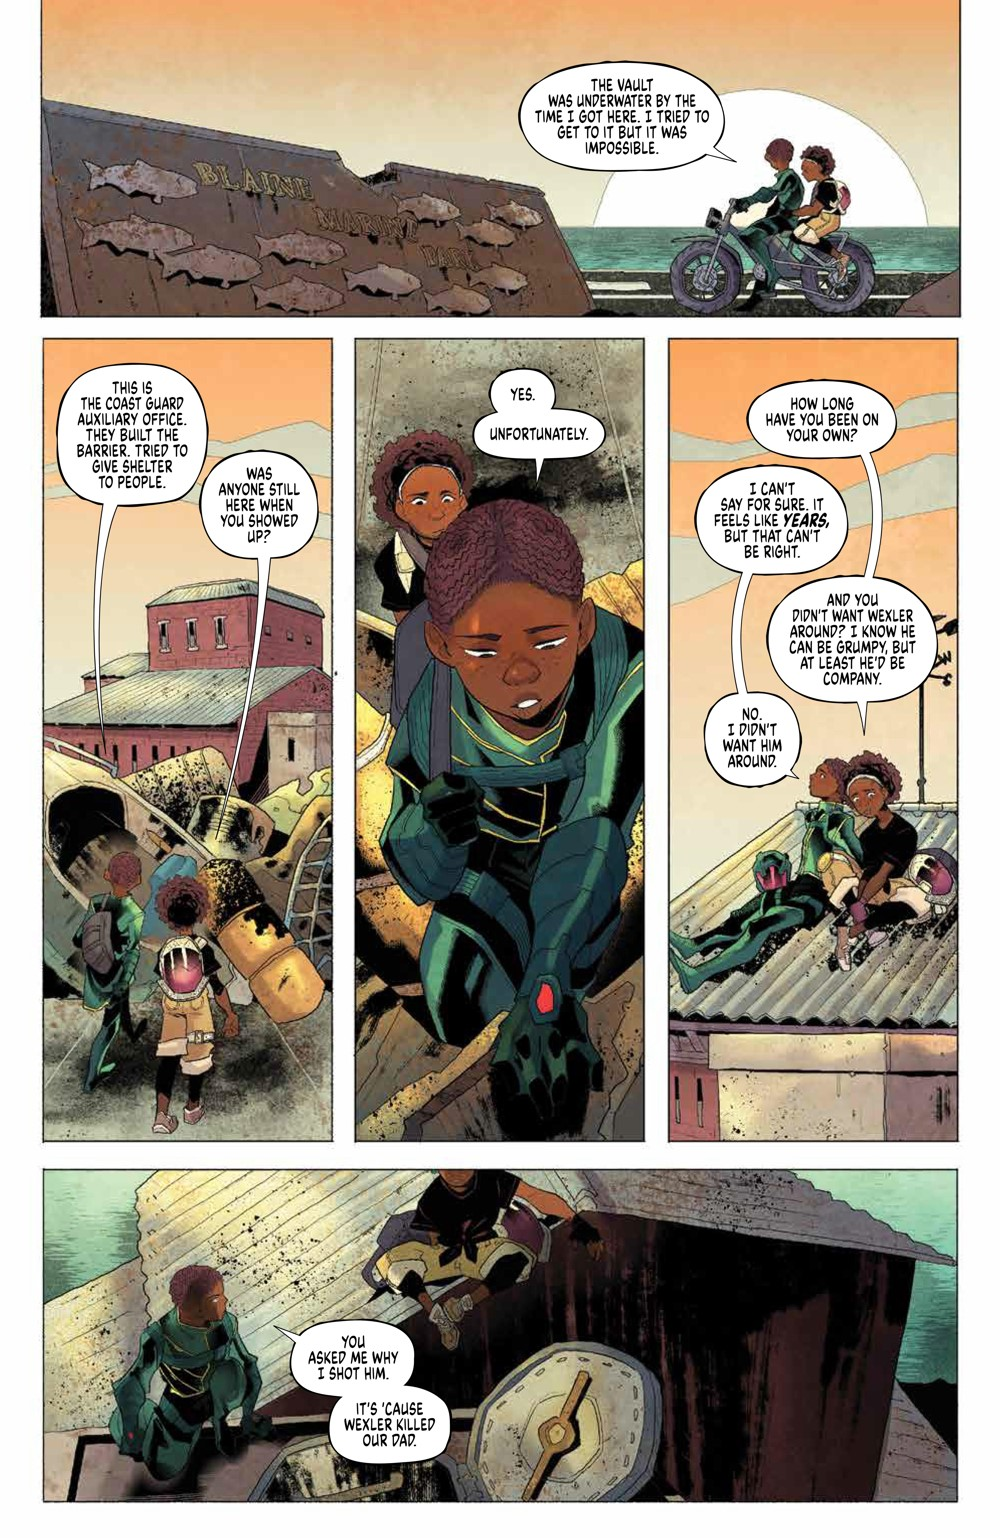 Eve_004_PRESS_8 ComicList Previews: EVE #4 (OF 5)